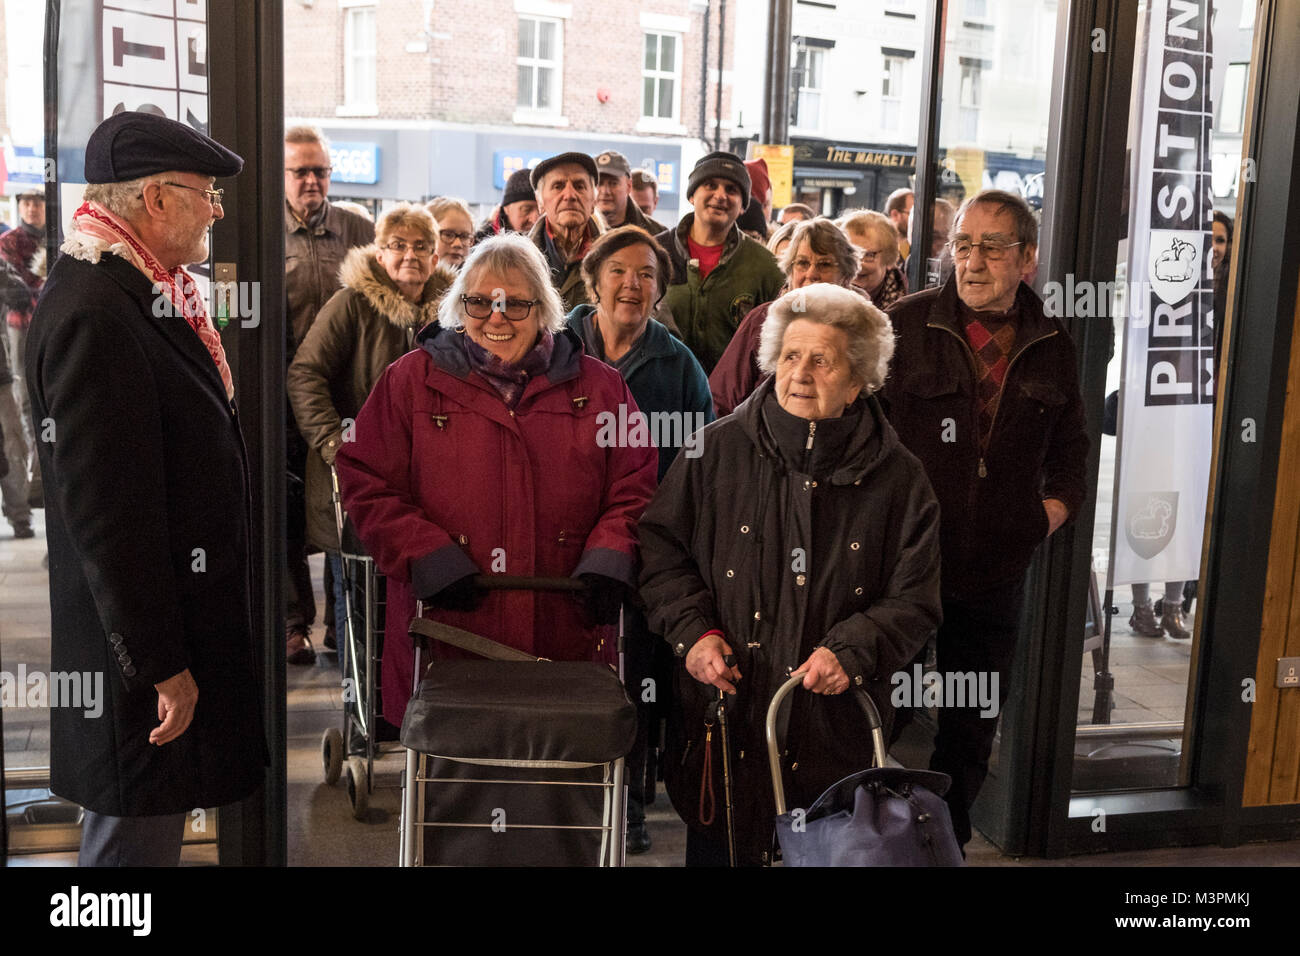 Preston, UK. 12th February 2018. The doors of Preston's refurbished and modernised Victorian Market being opened - Stock Image